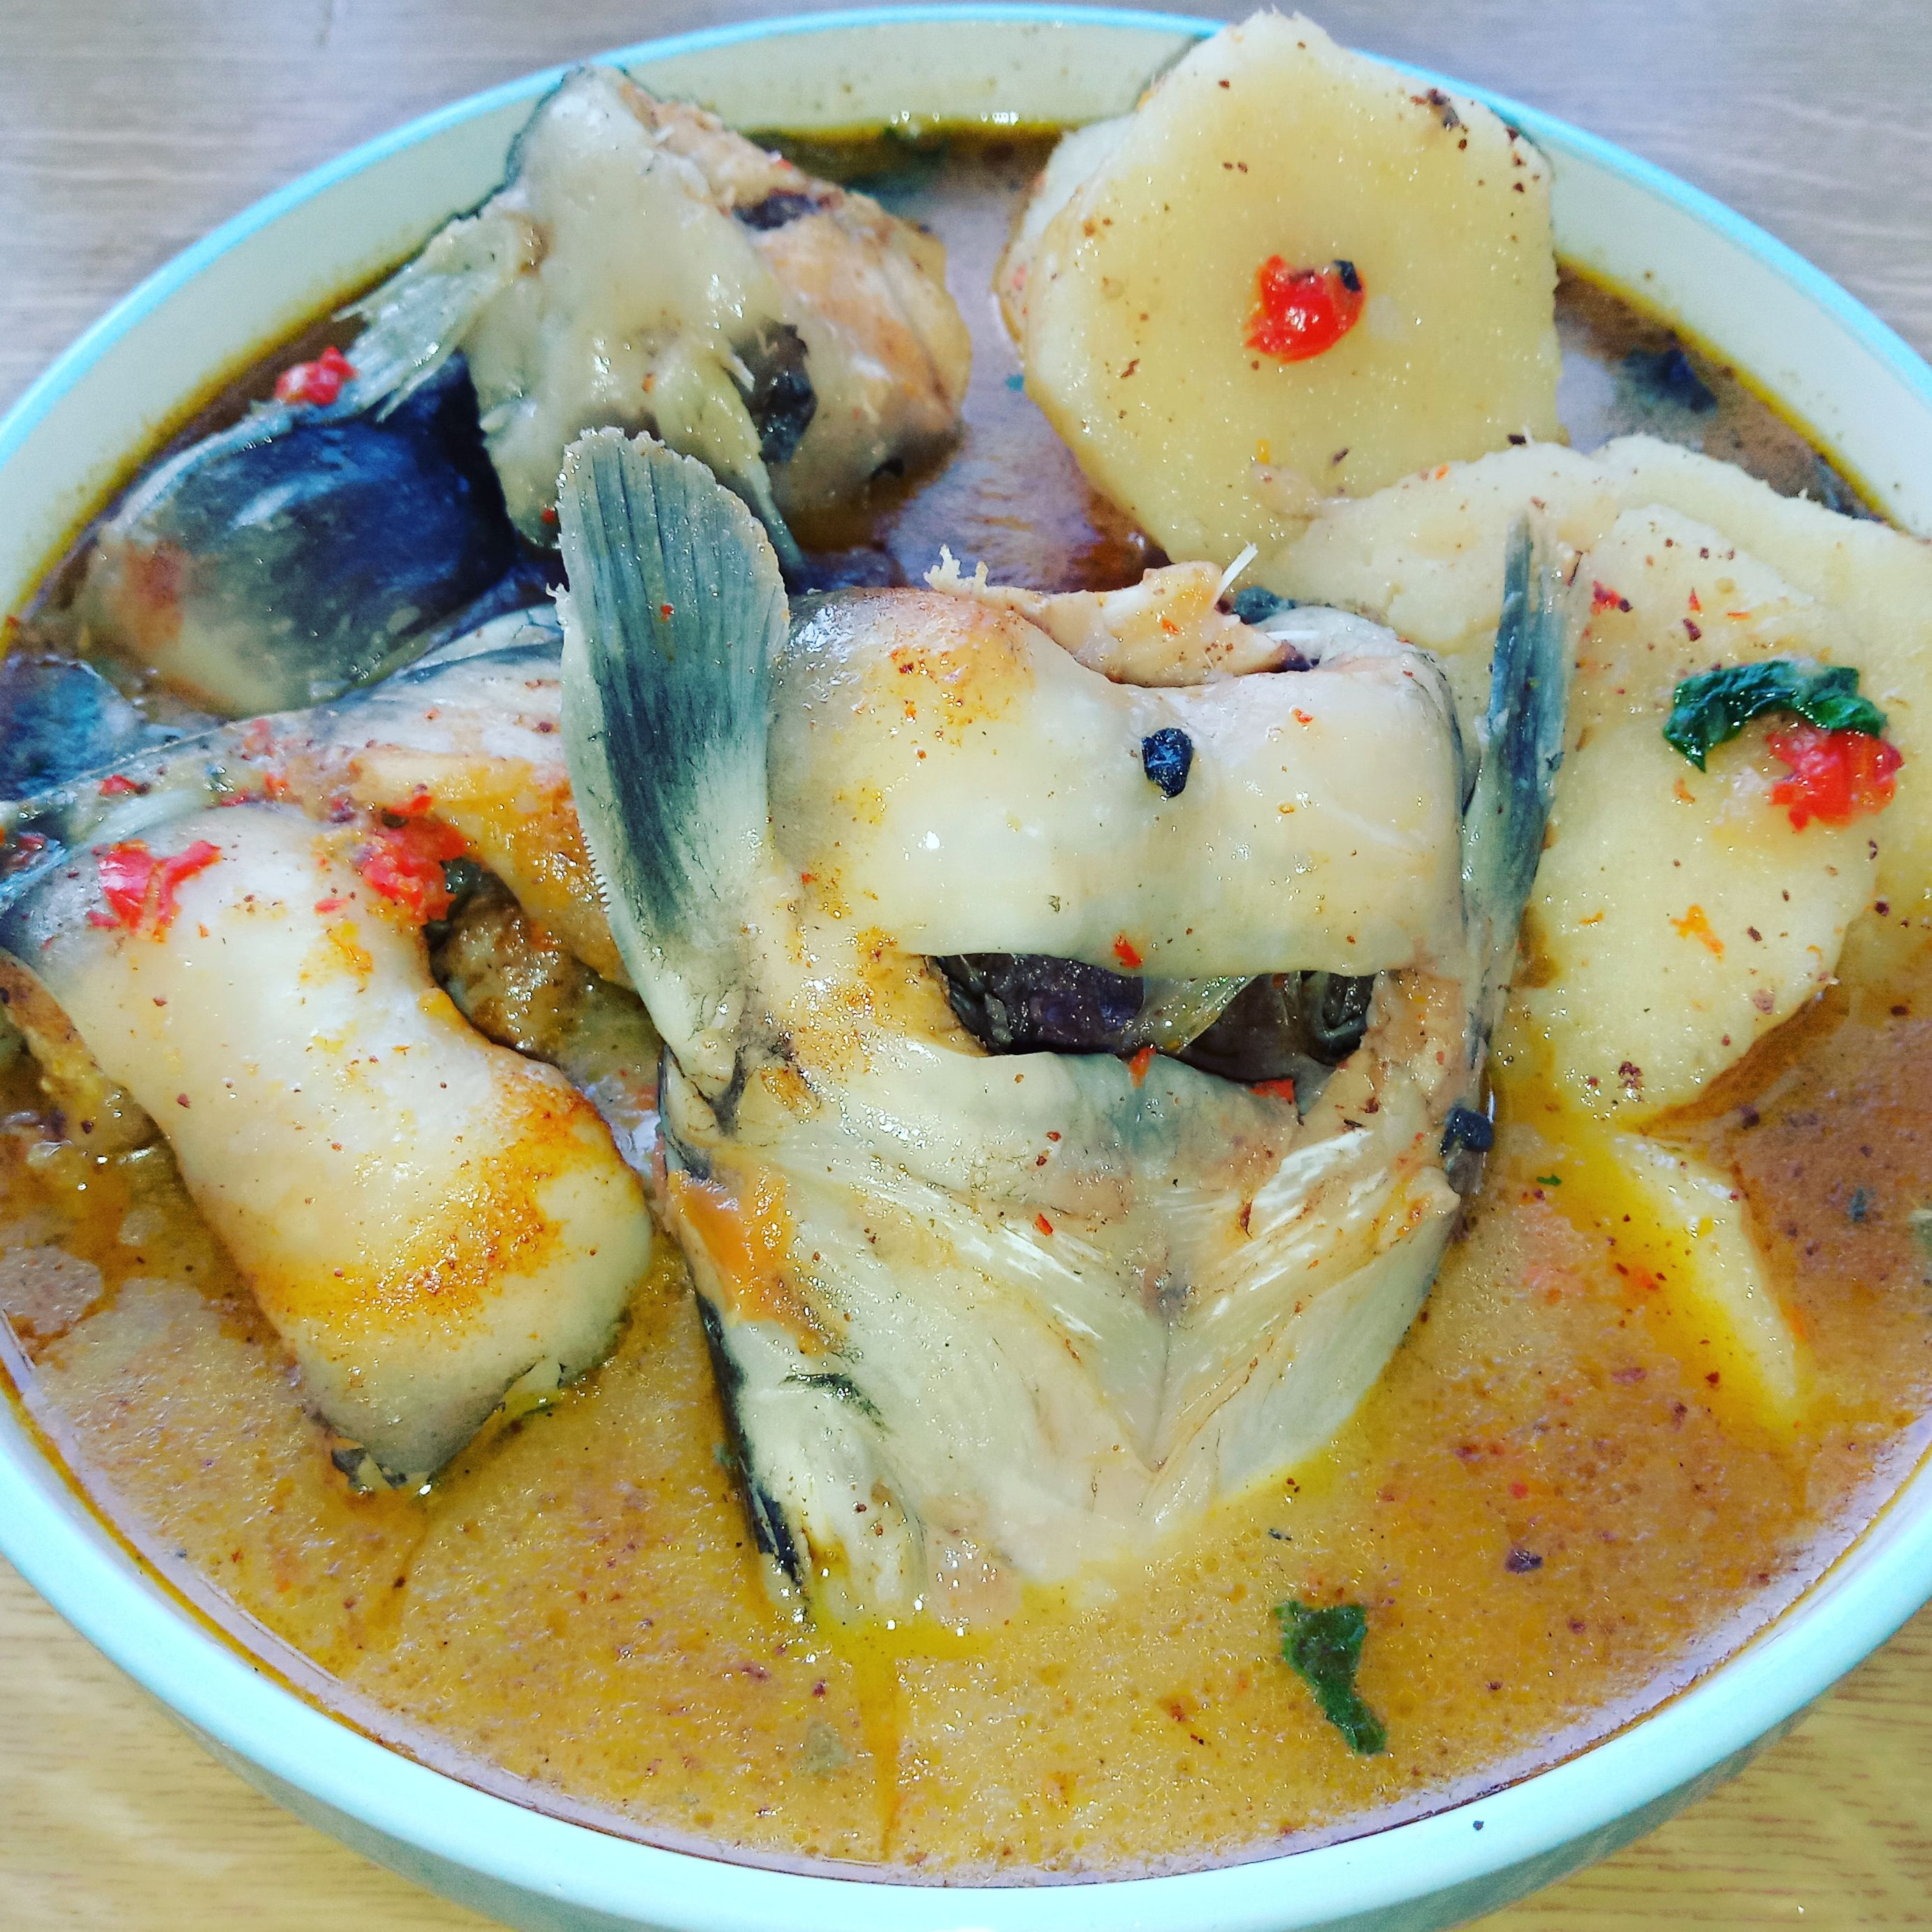 Spicy Fish soup with steamed yam and basil